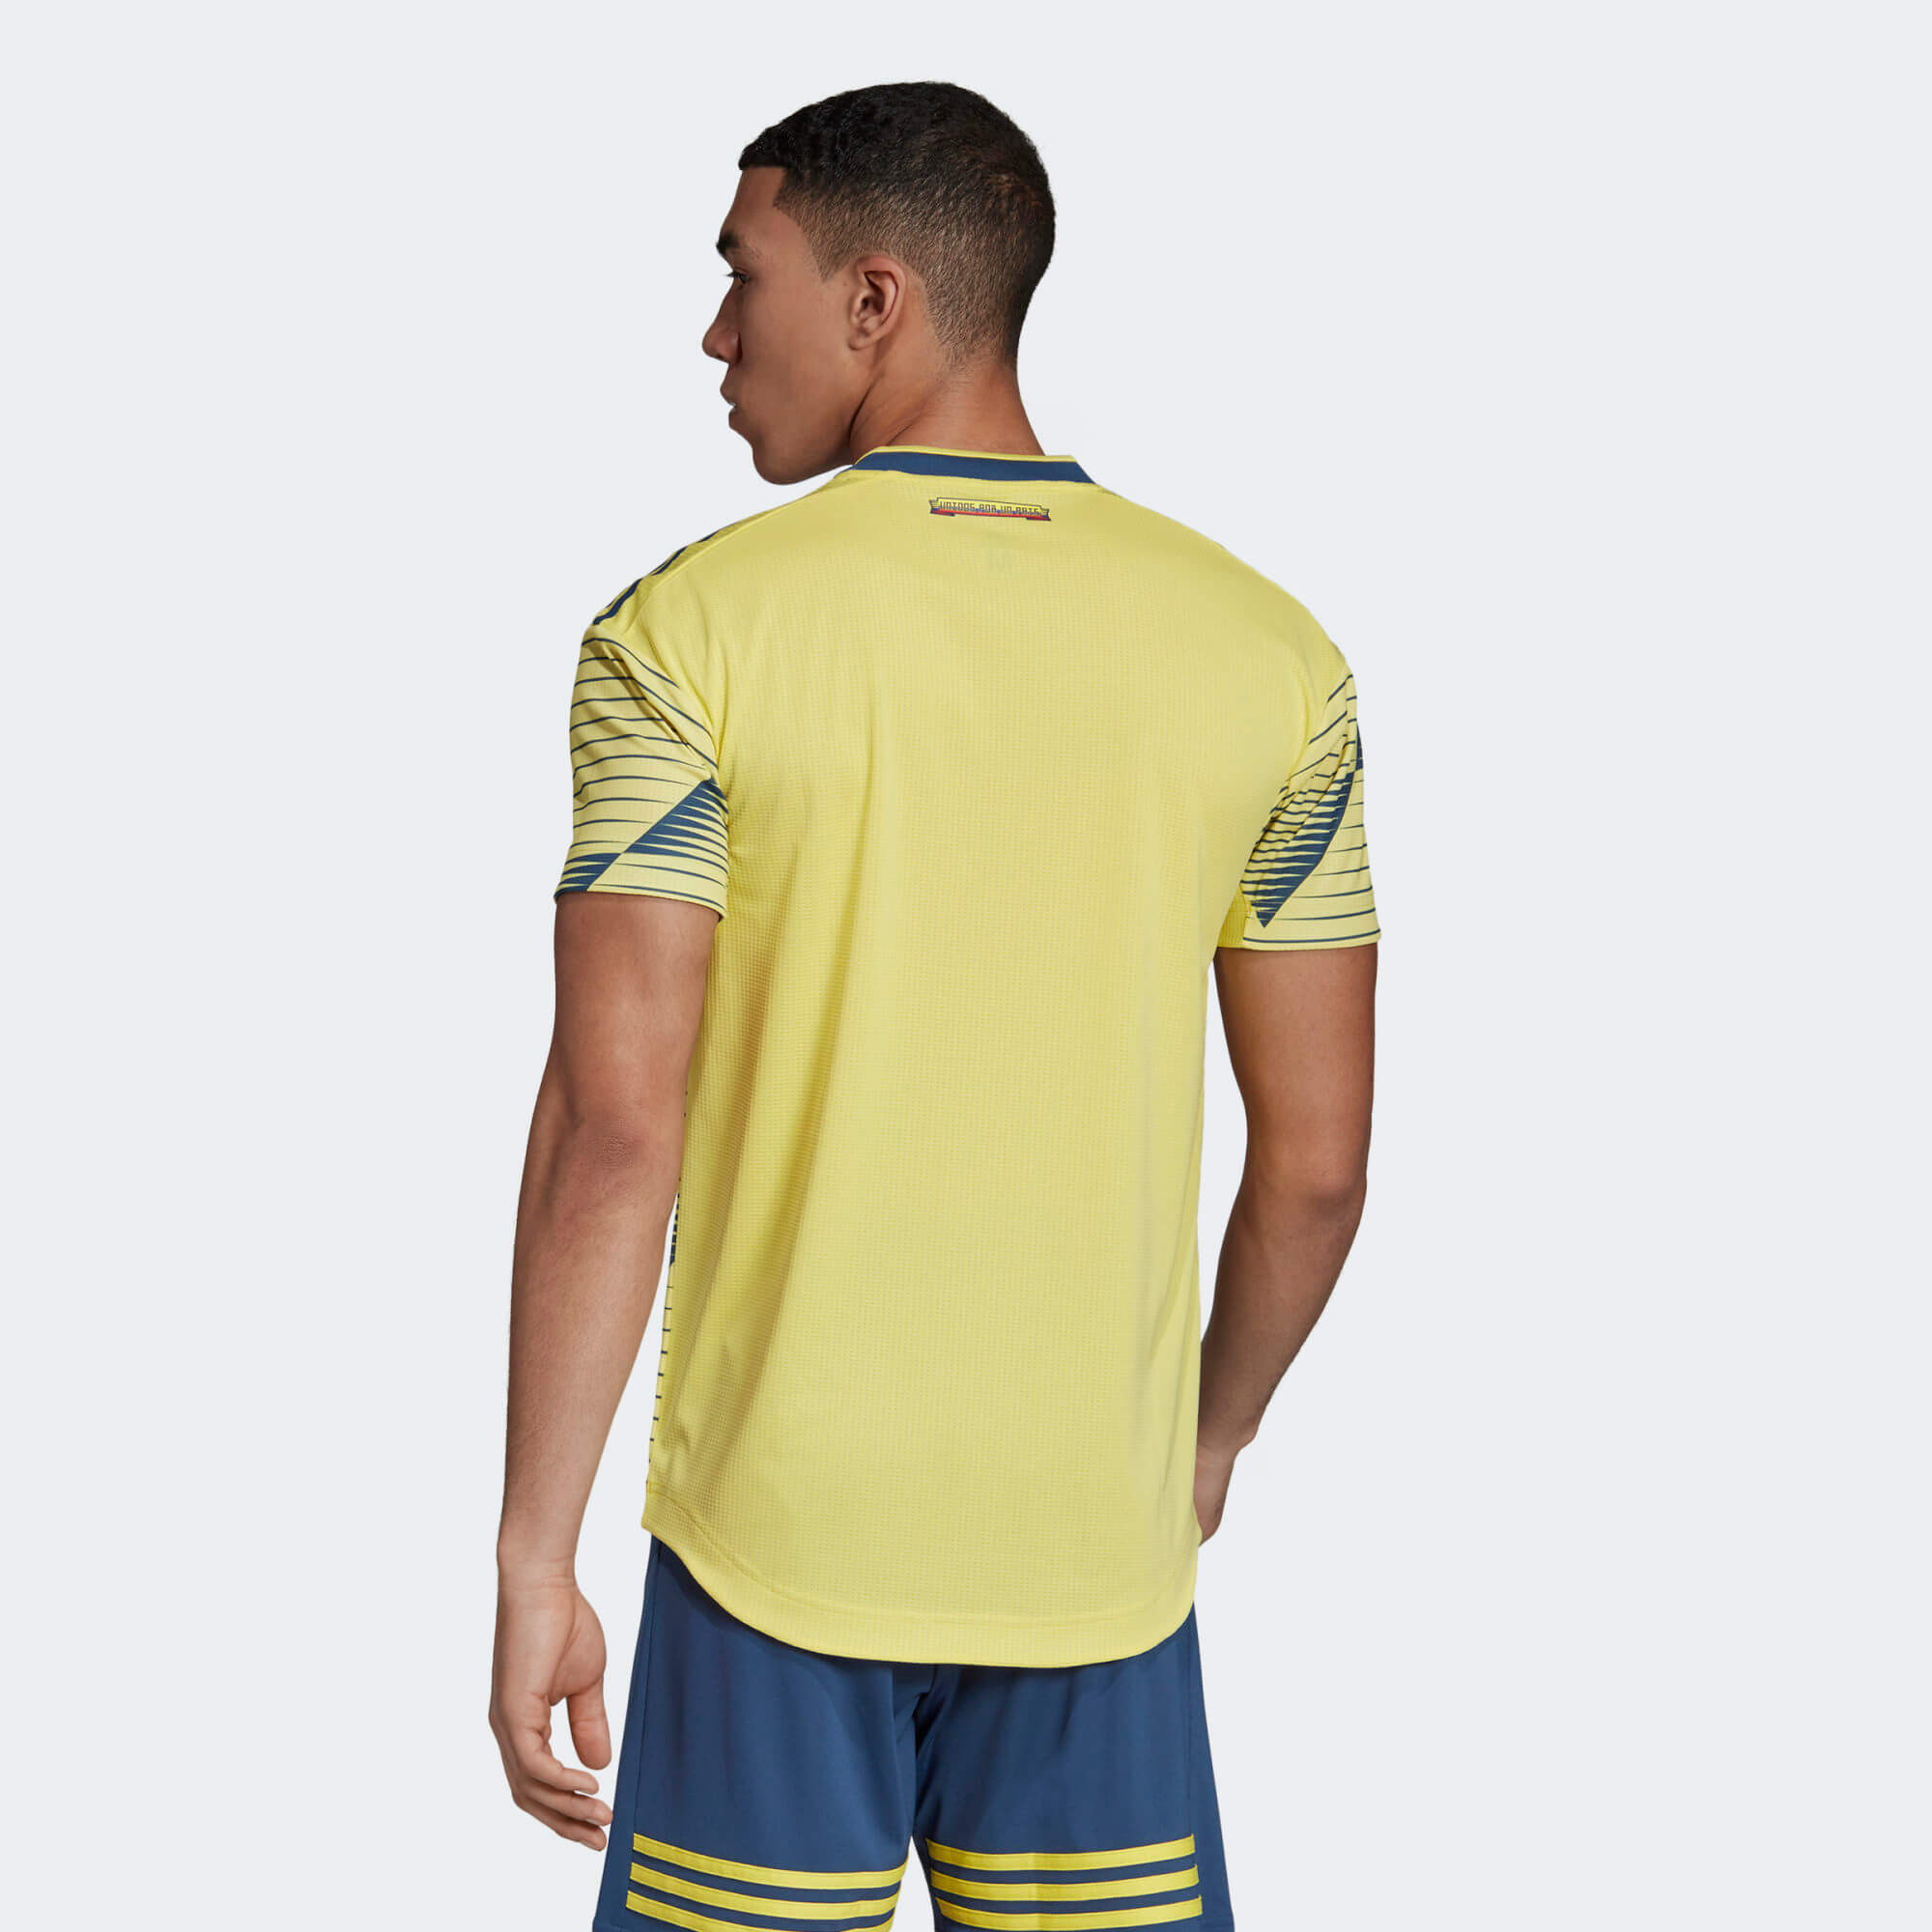 bdc65171840 ... Click to enlarge image colombia 2019 copa america adidas home kit 7.jpg  ...